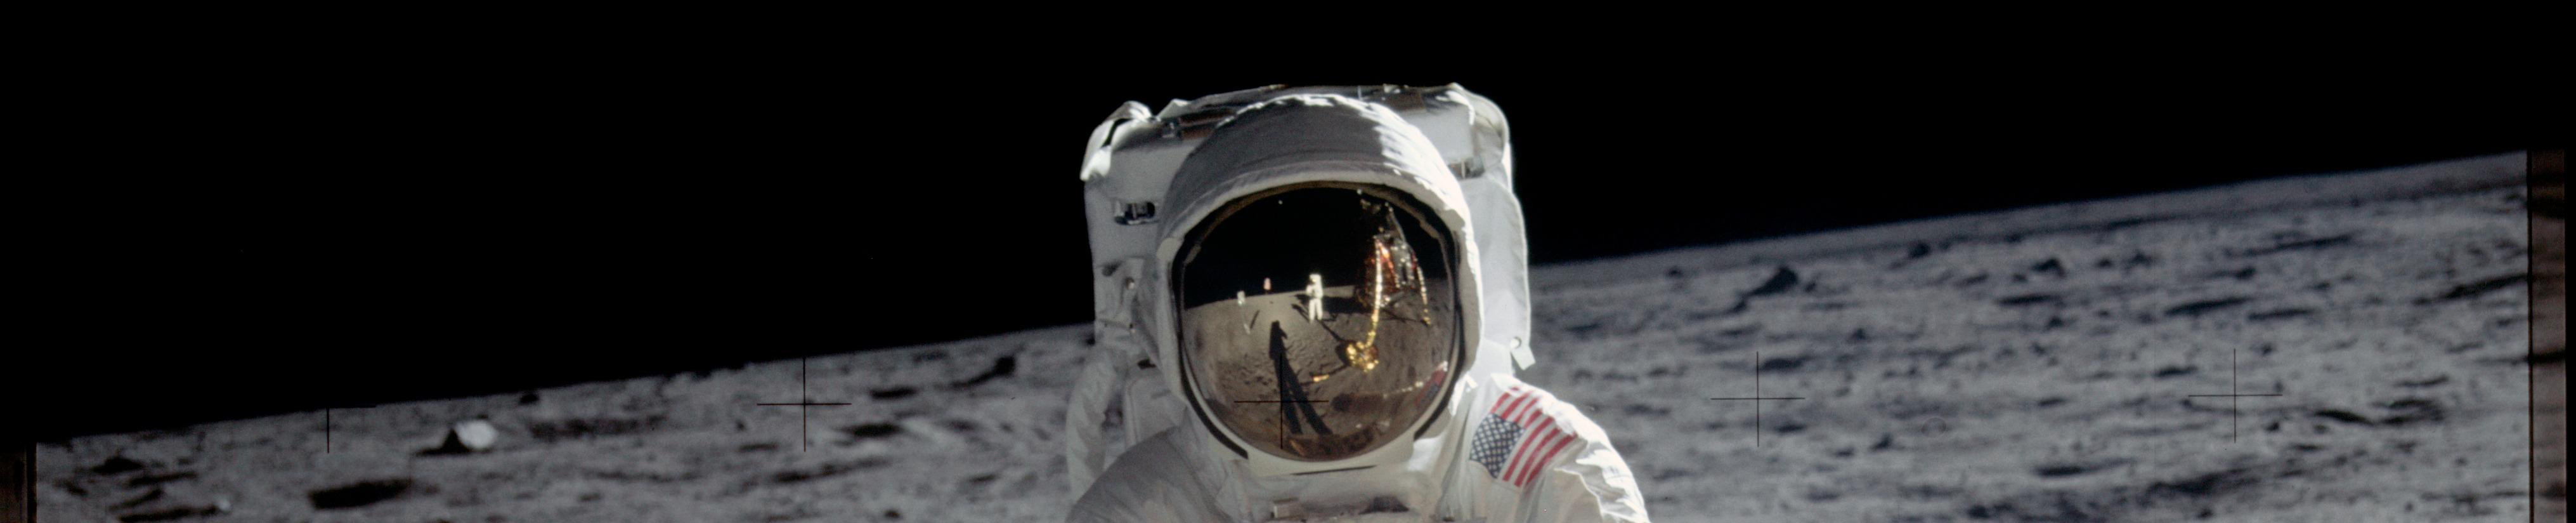 50 Years Since We Walked on the Moon